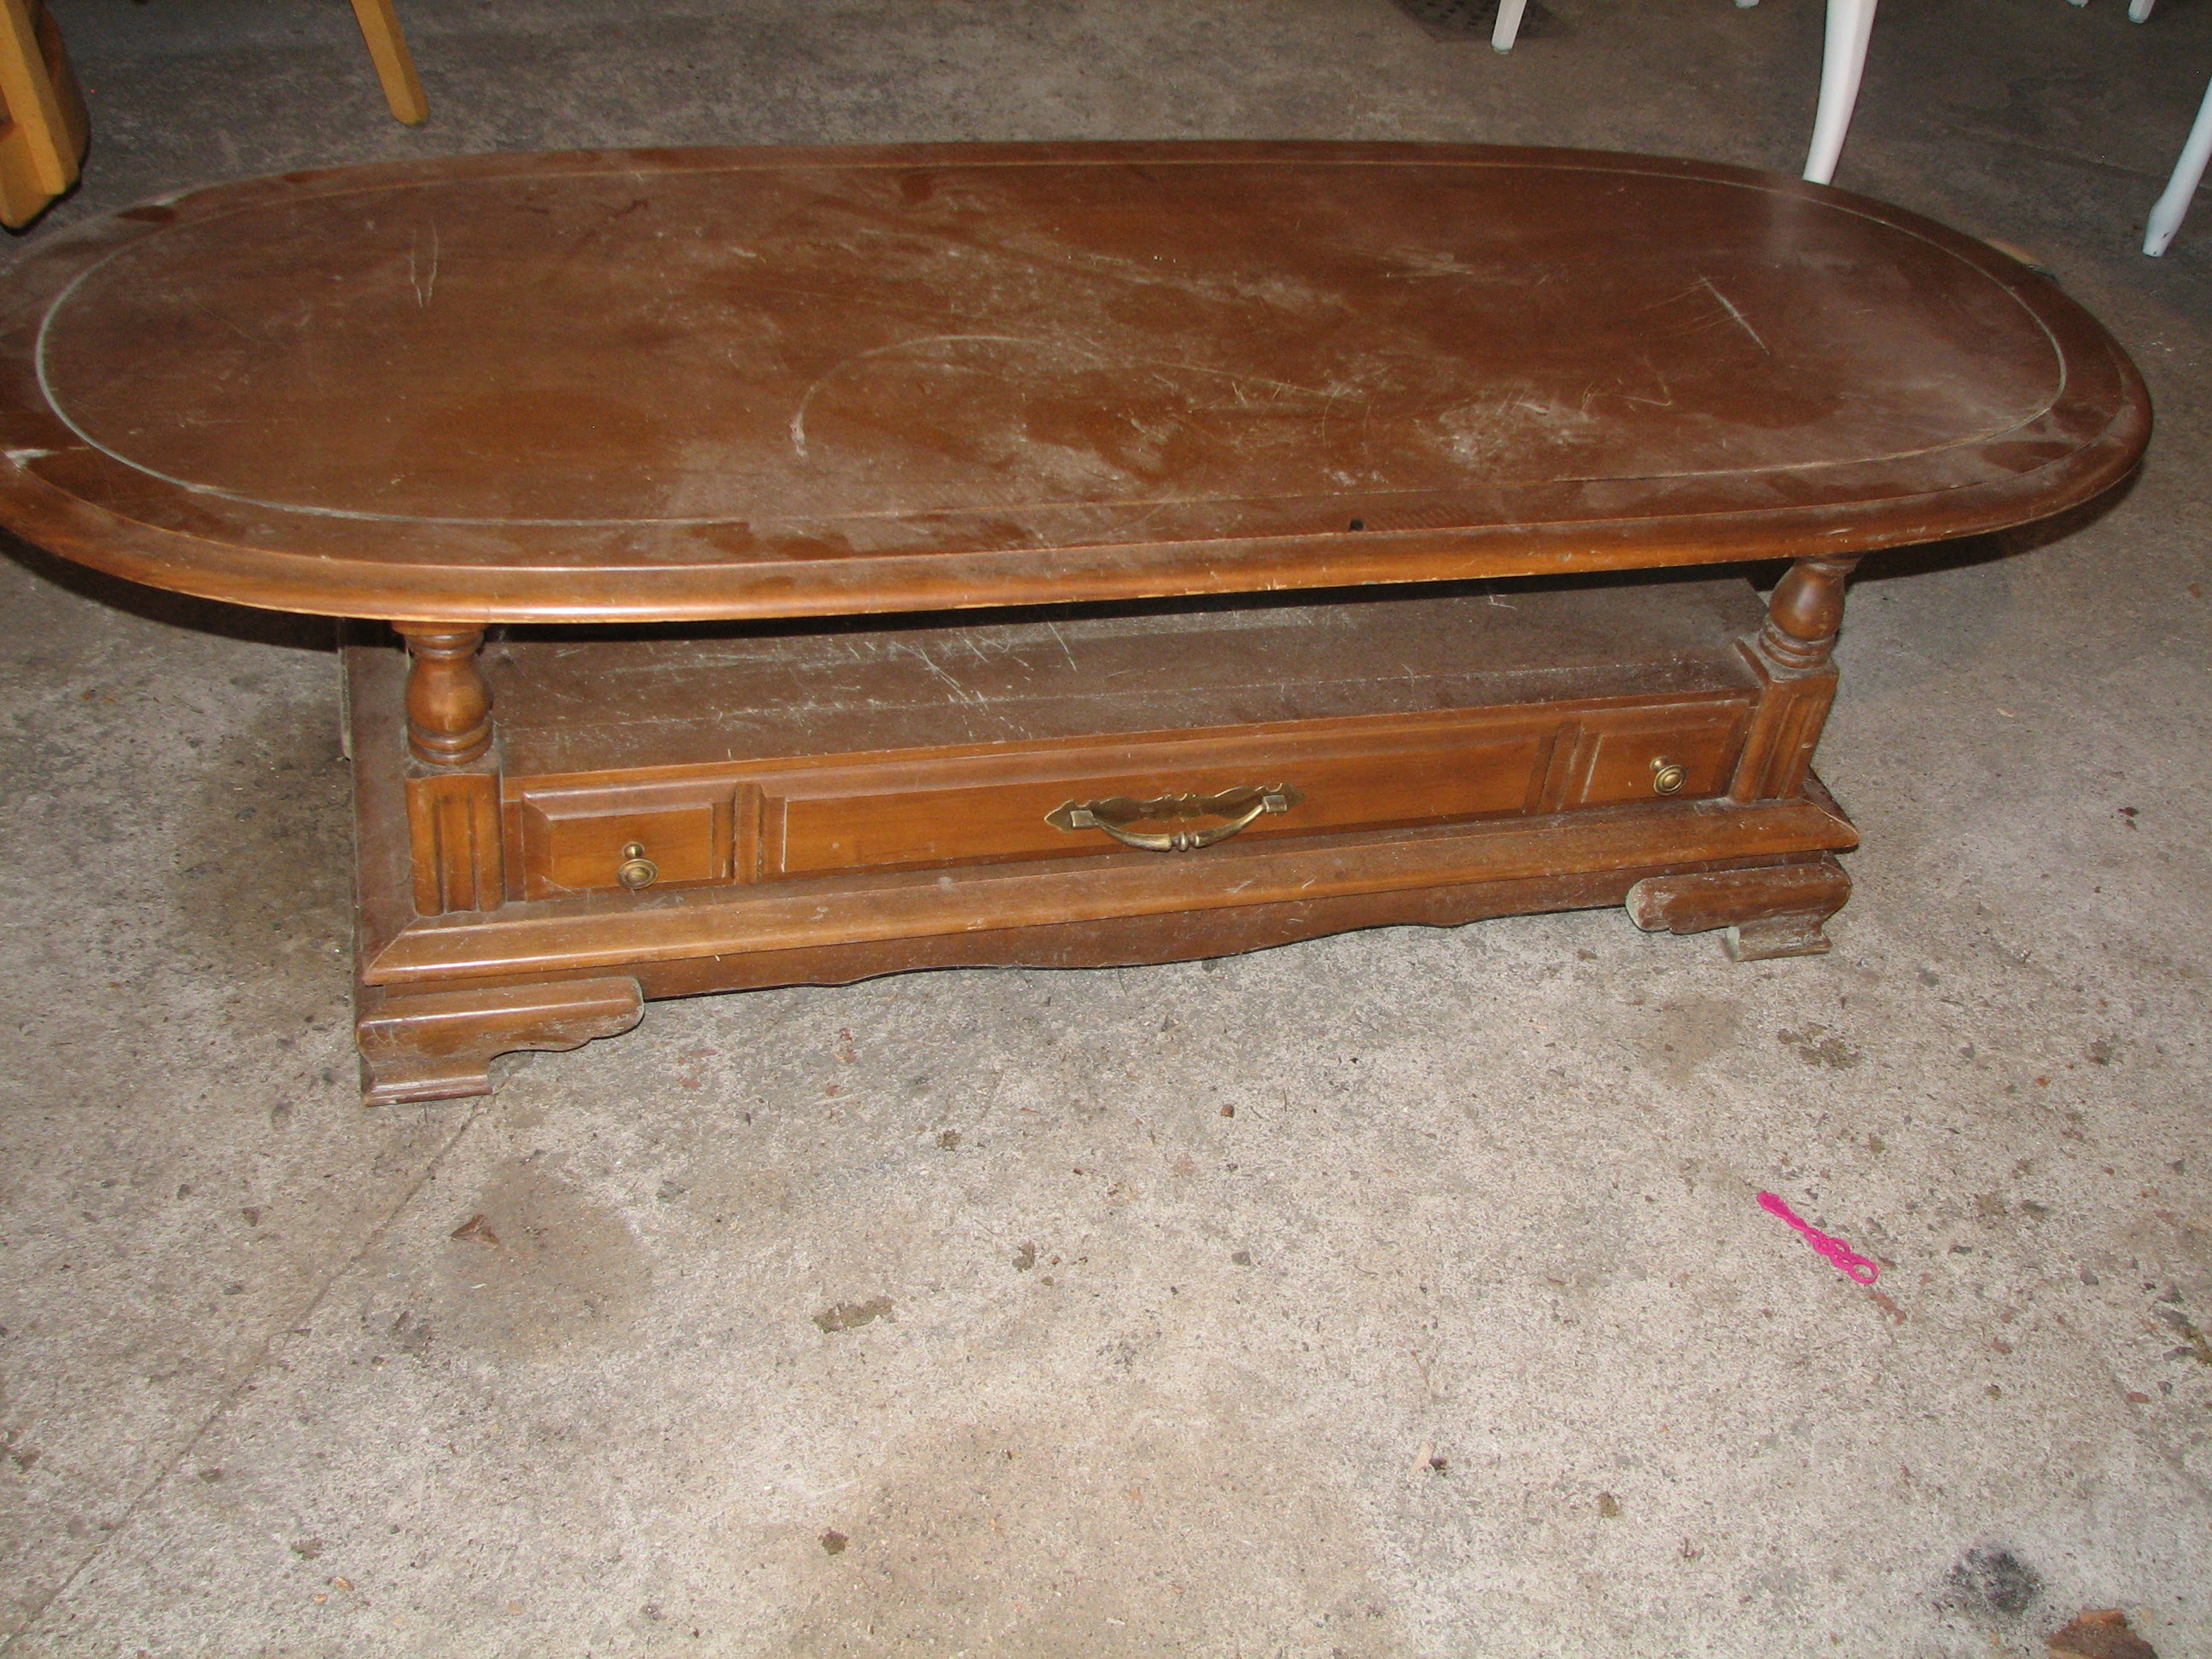 Oval Coffee Table Makeover - FunCycled